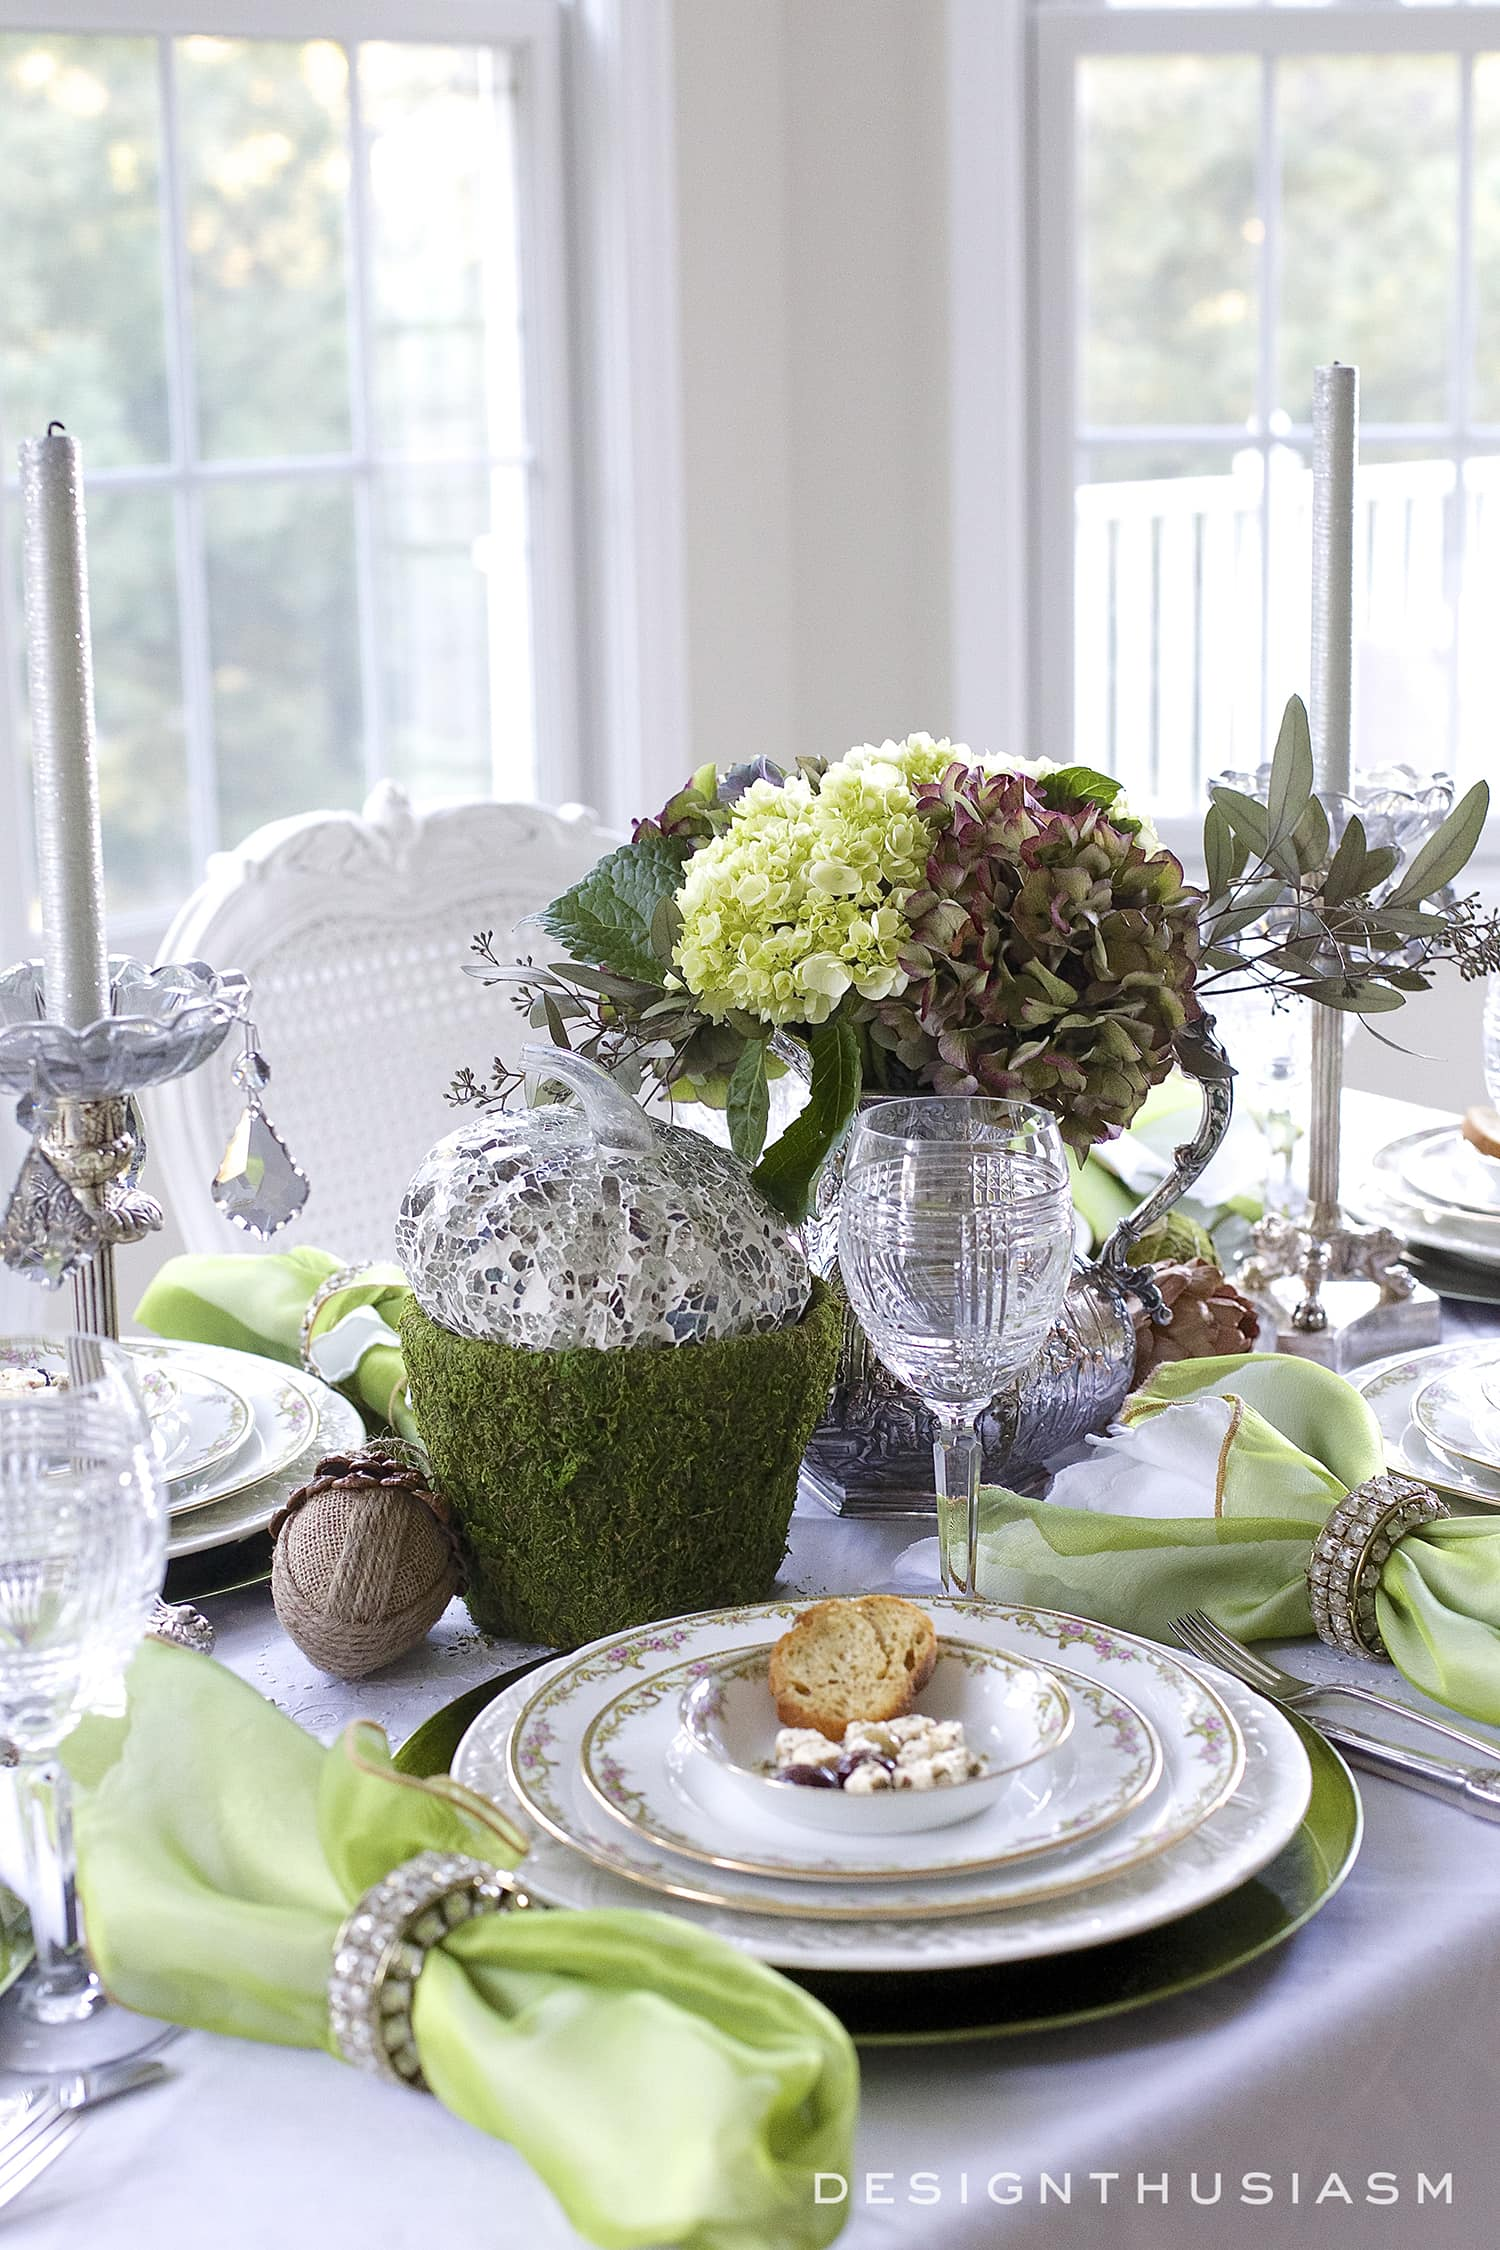 Good Mixing Casual And Formal In A Tablescape | Designthusiasm.com